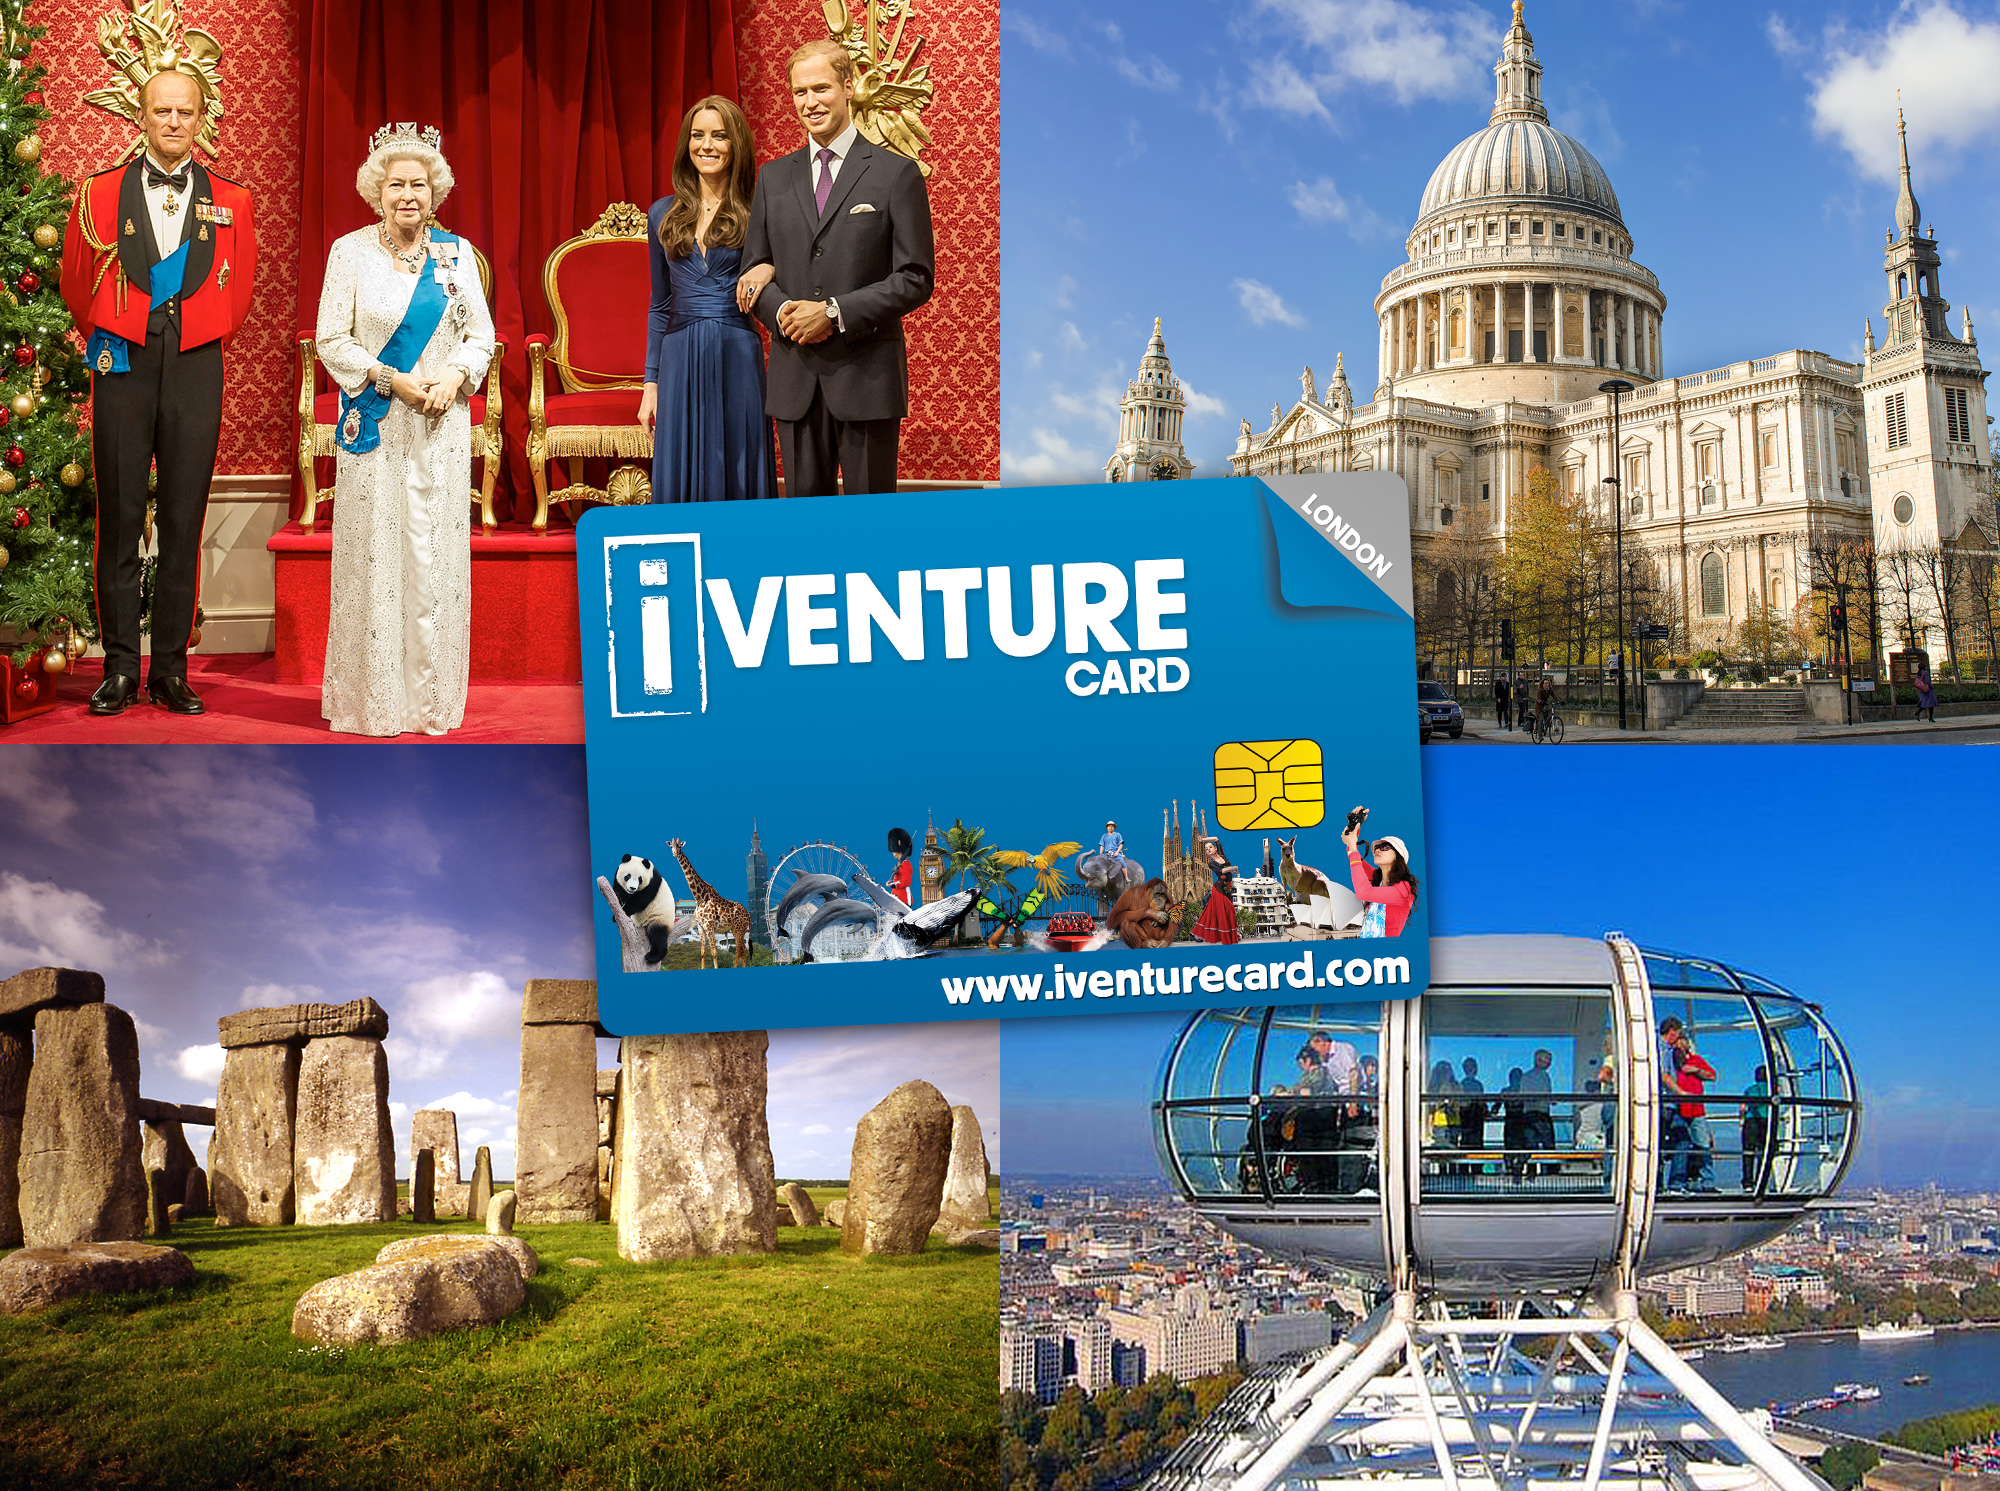 Save more than 40% on London's top attractions